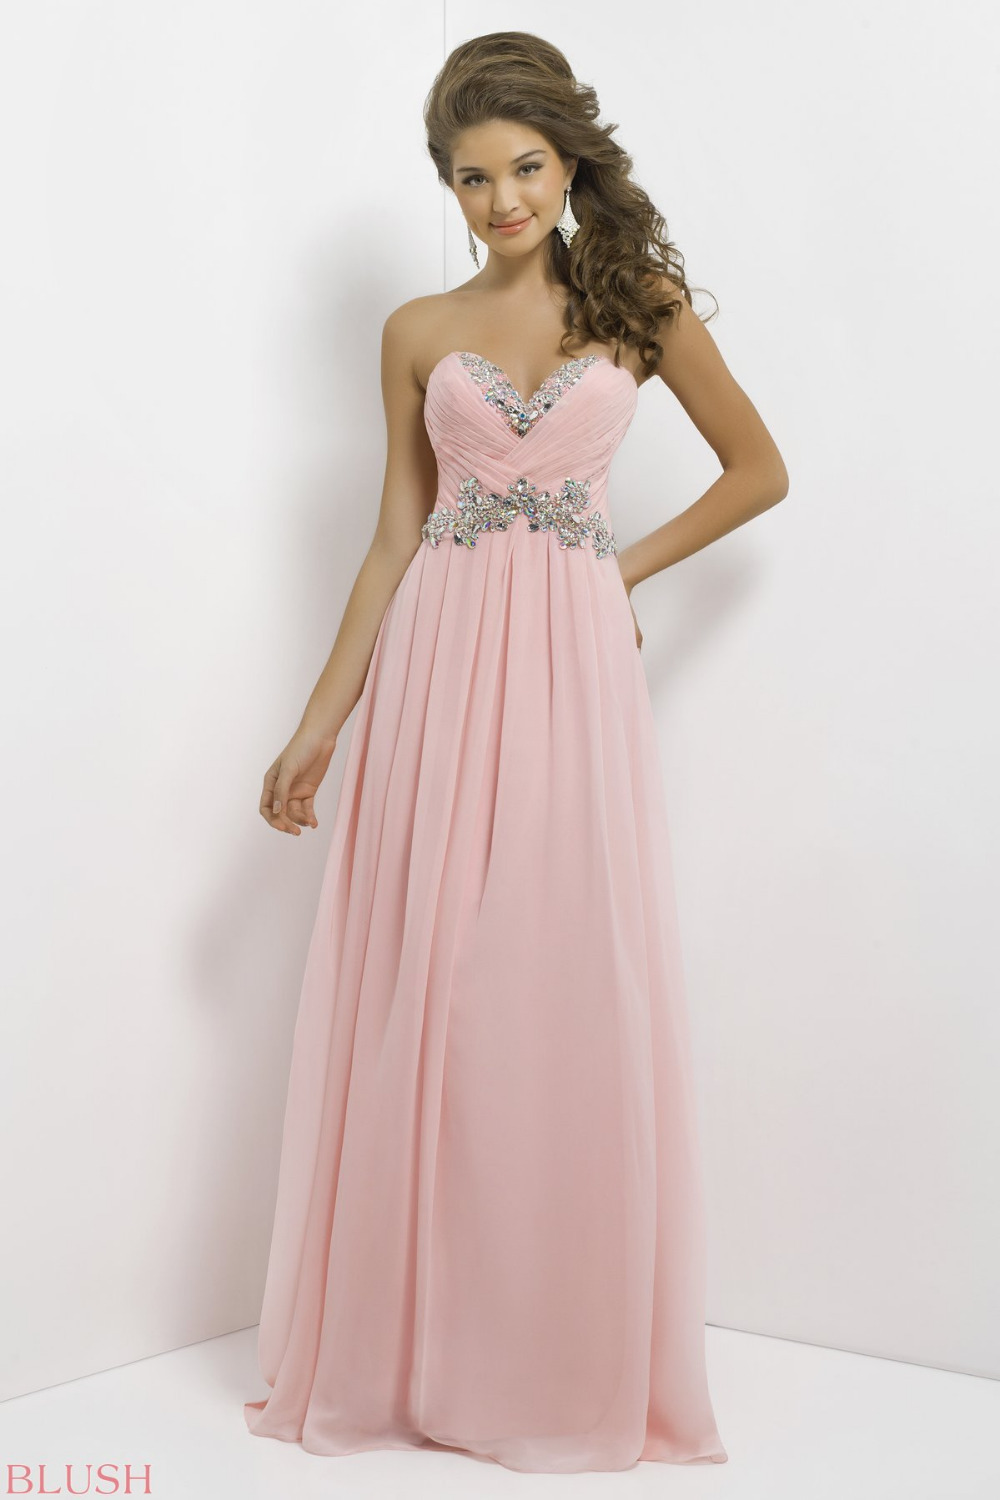 Long Pink Dresses for 8th Grade Graduation